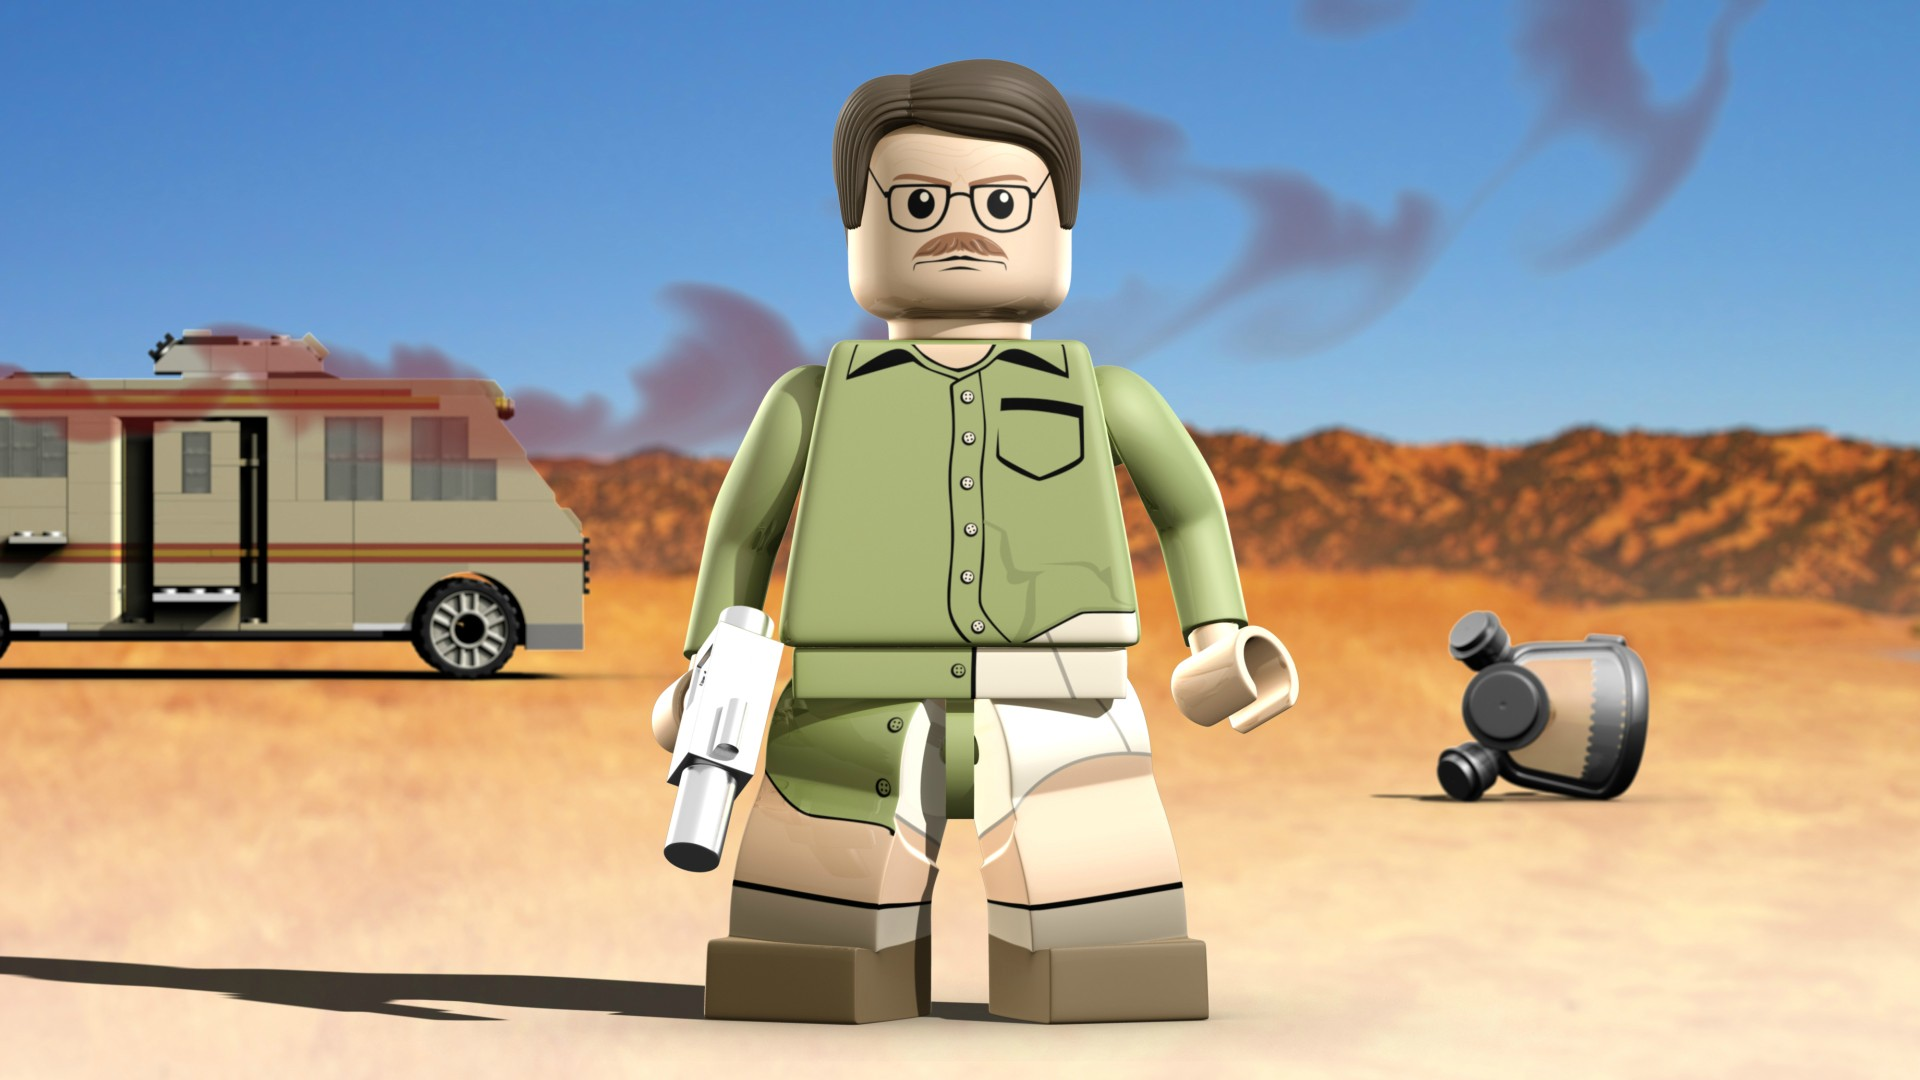 New Cooking Gadgets Animator Creates Incredible Lego Breaking Bad Video Game